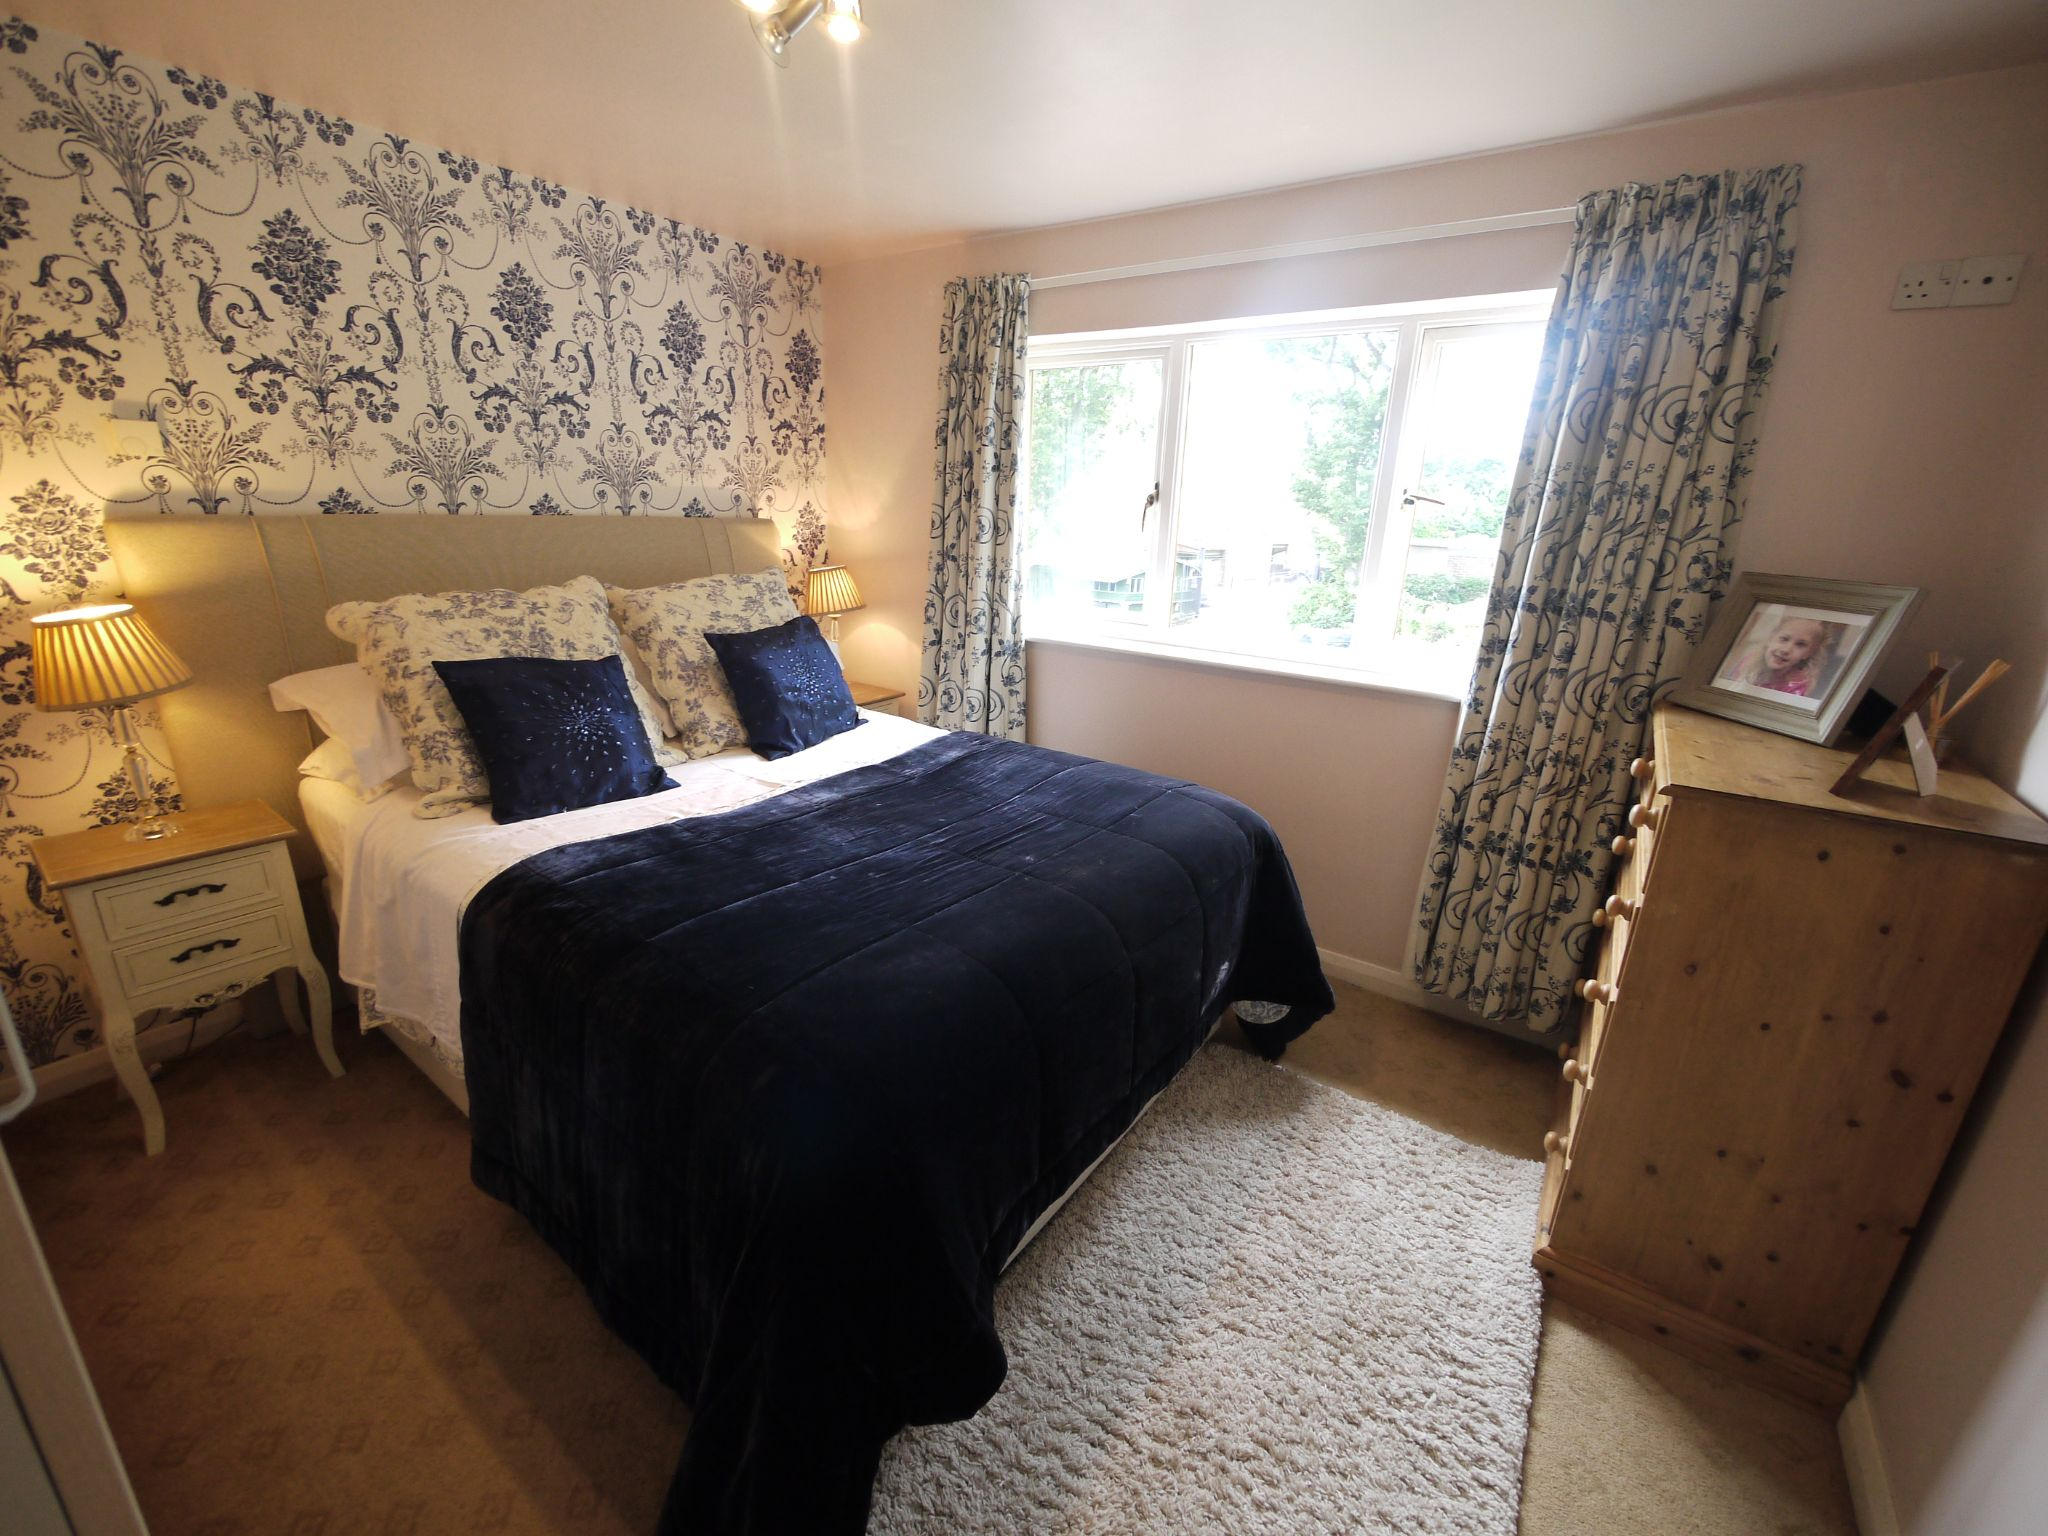 4 bedroom detached house For Sale in Brighouse - Bedroom 2.